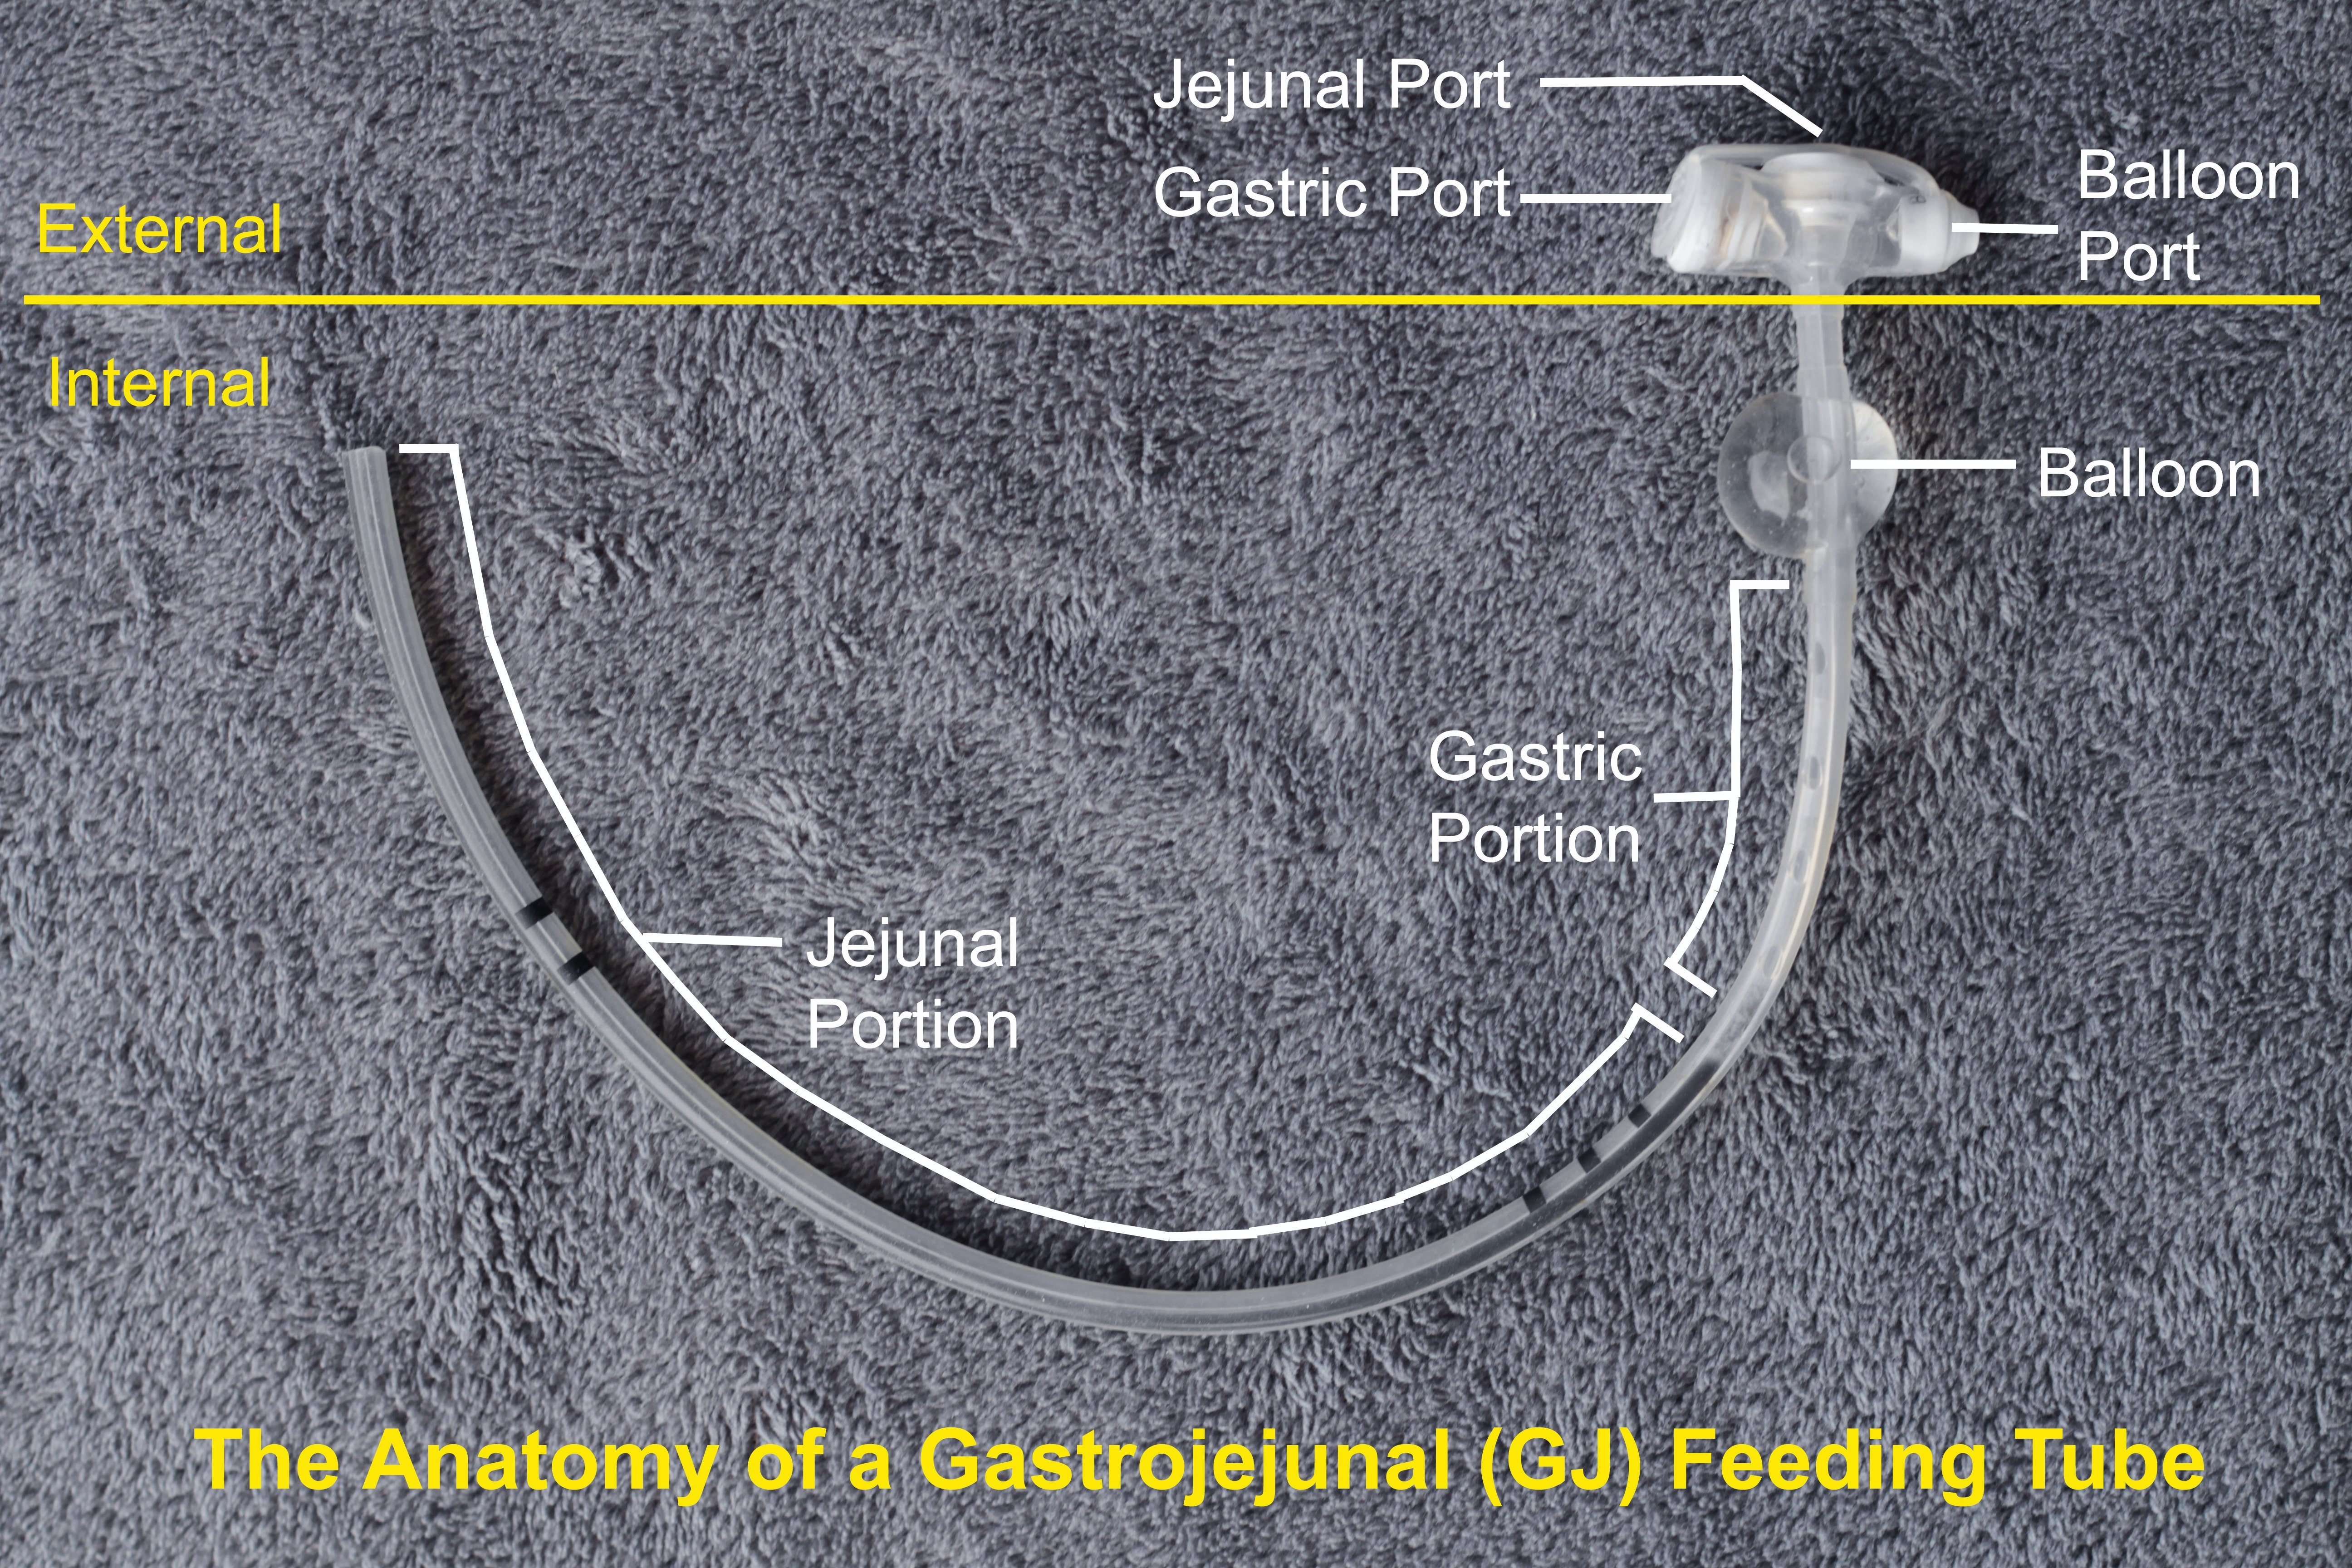 Gastro jejunal gj tubes feeding tube awareness foundation gj tubes are placed in the stomach just like g tubes but a thin long tube is threaded into the jejunal j portion of the small intestine ccuart Gallery